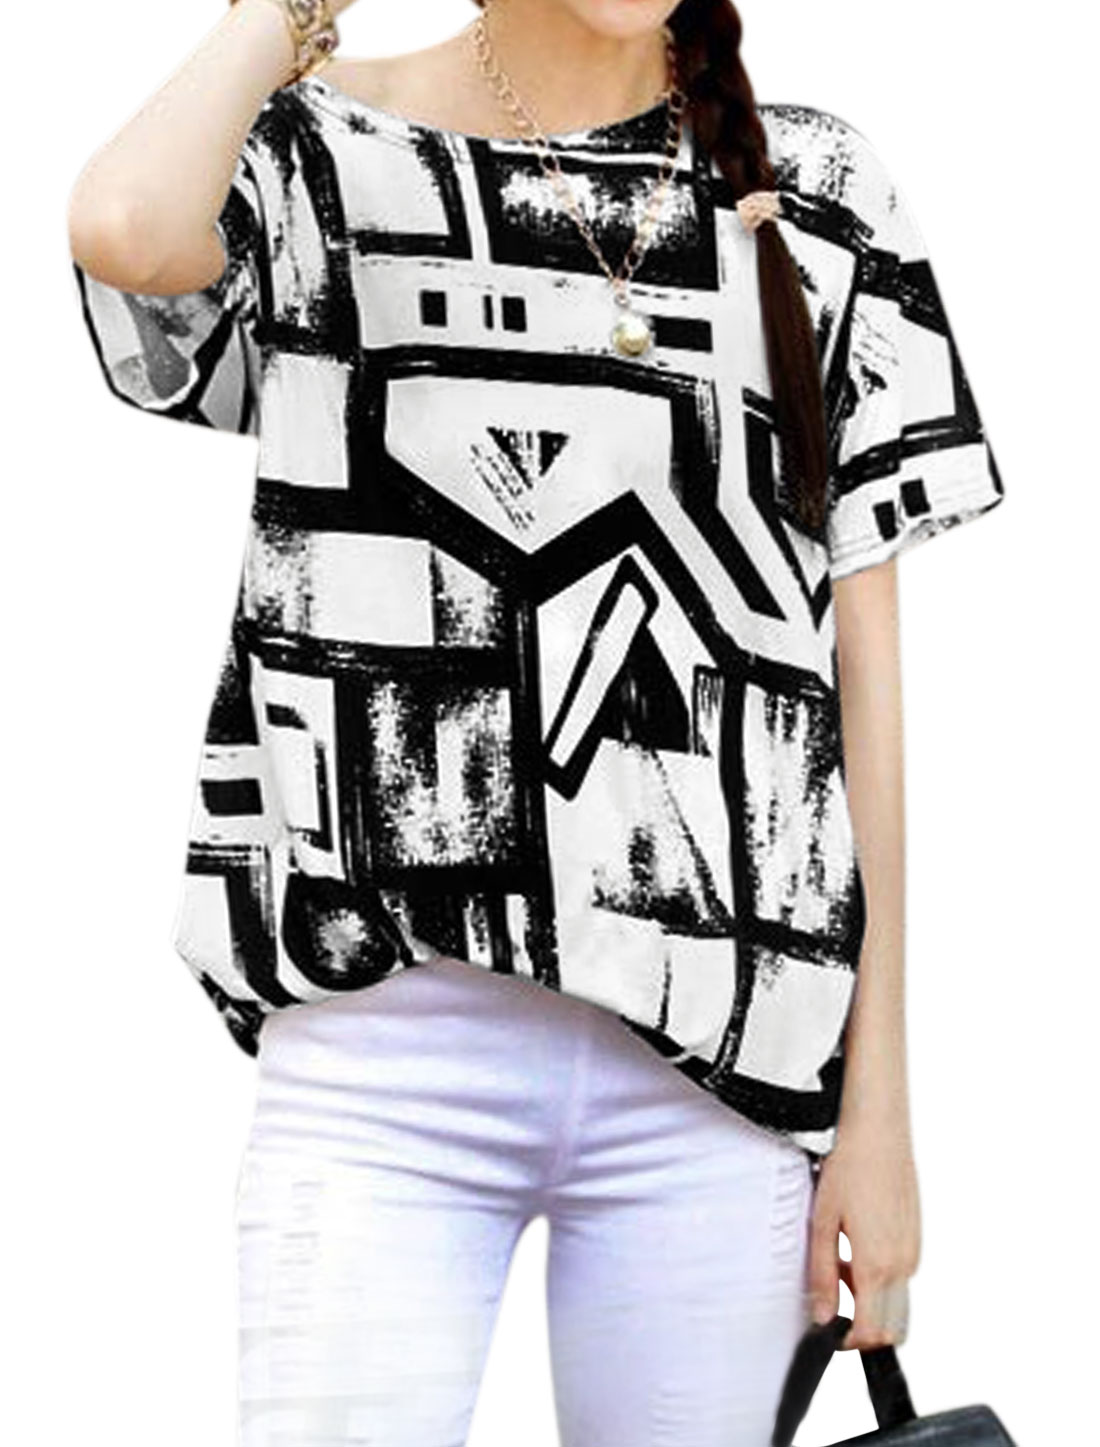 Woman Geometric Prints Short Sleeves Shirred Sides Tunic Top White Black S